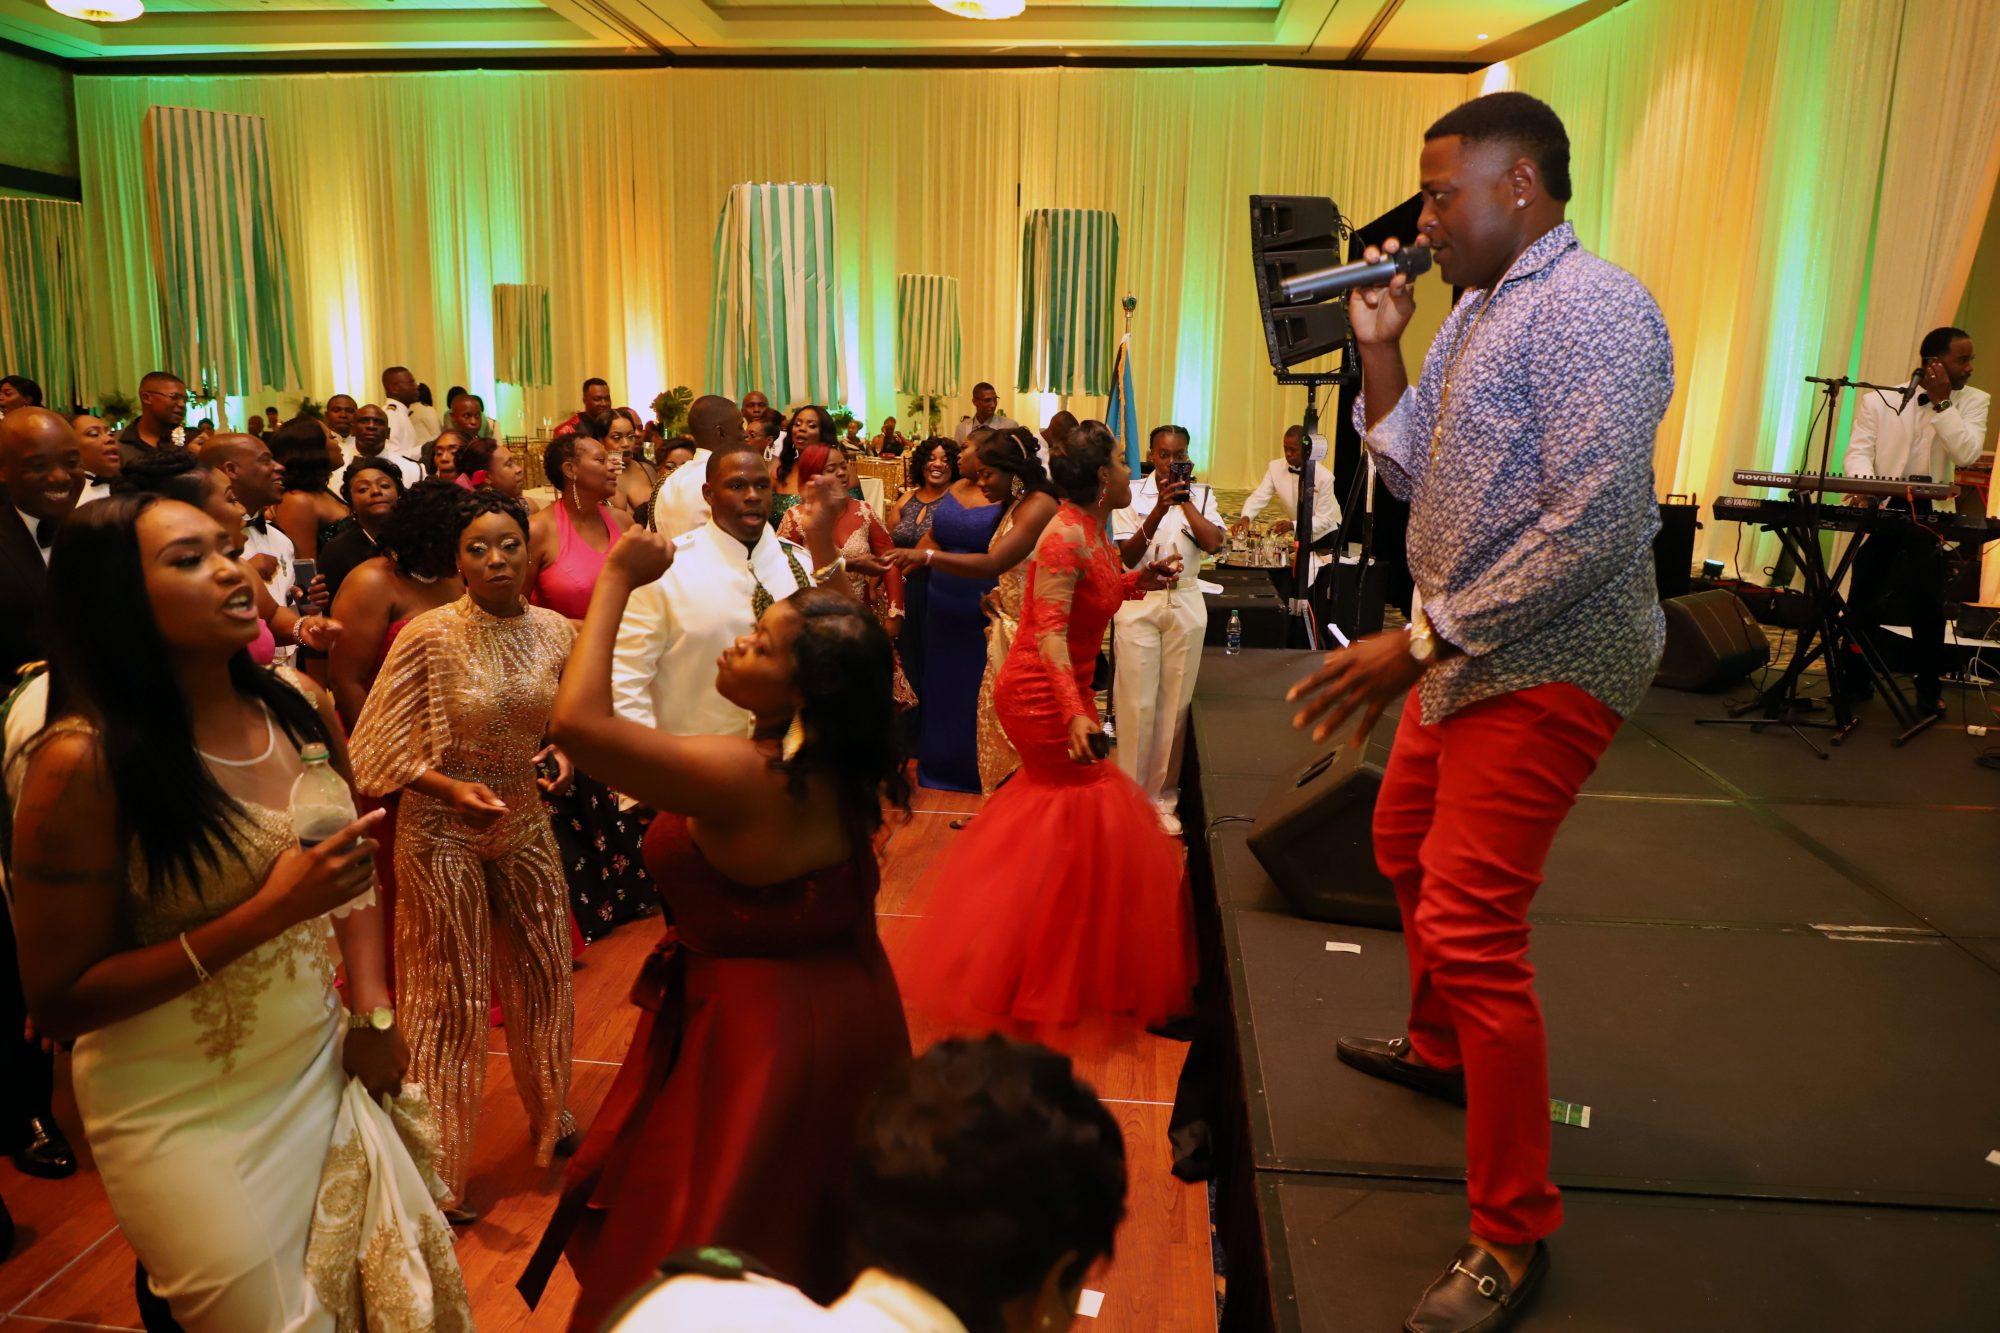 Bahamian singer D-Mac entertaining the crowd at the Annual Military Ball on June 1st